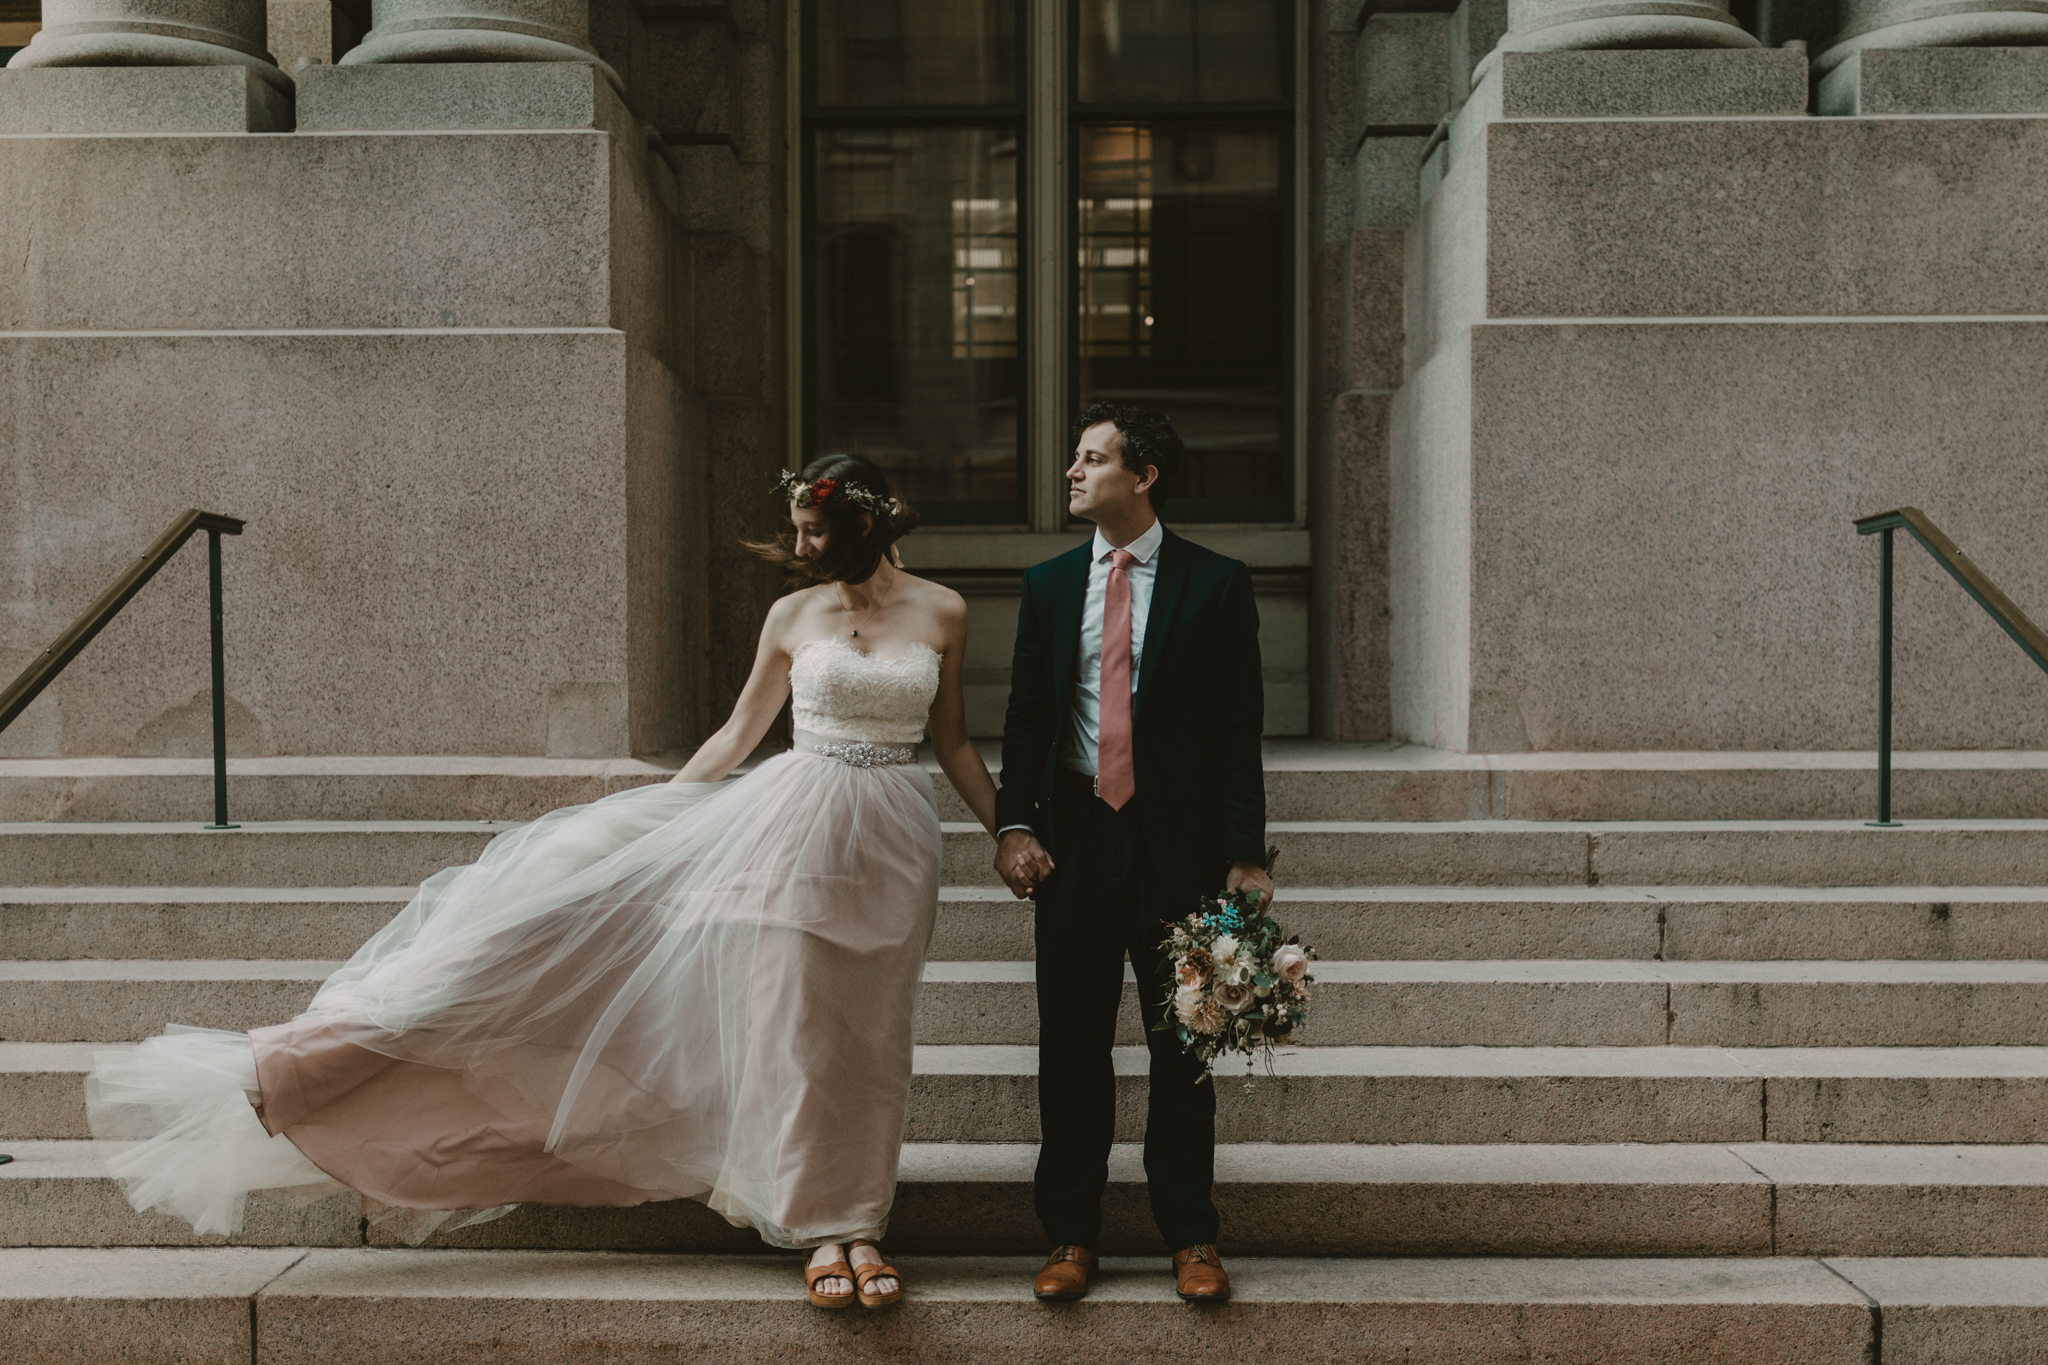 st louis wedding photographer elopement virginia harold-1.jpg